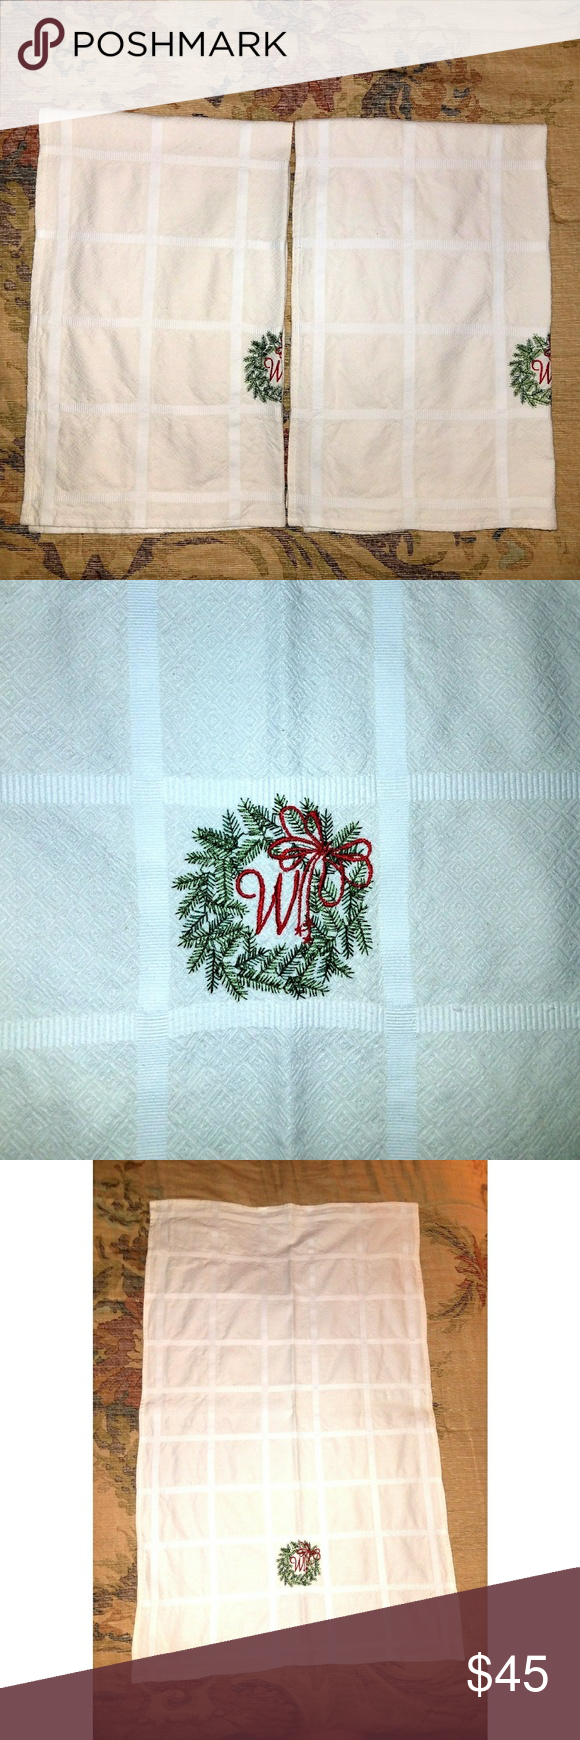 ❄Holiday Embroidered Towels